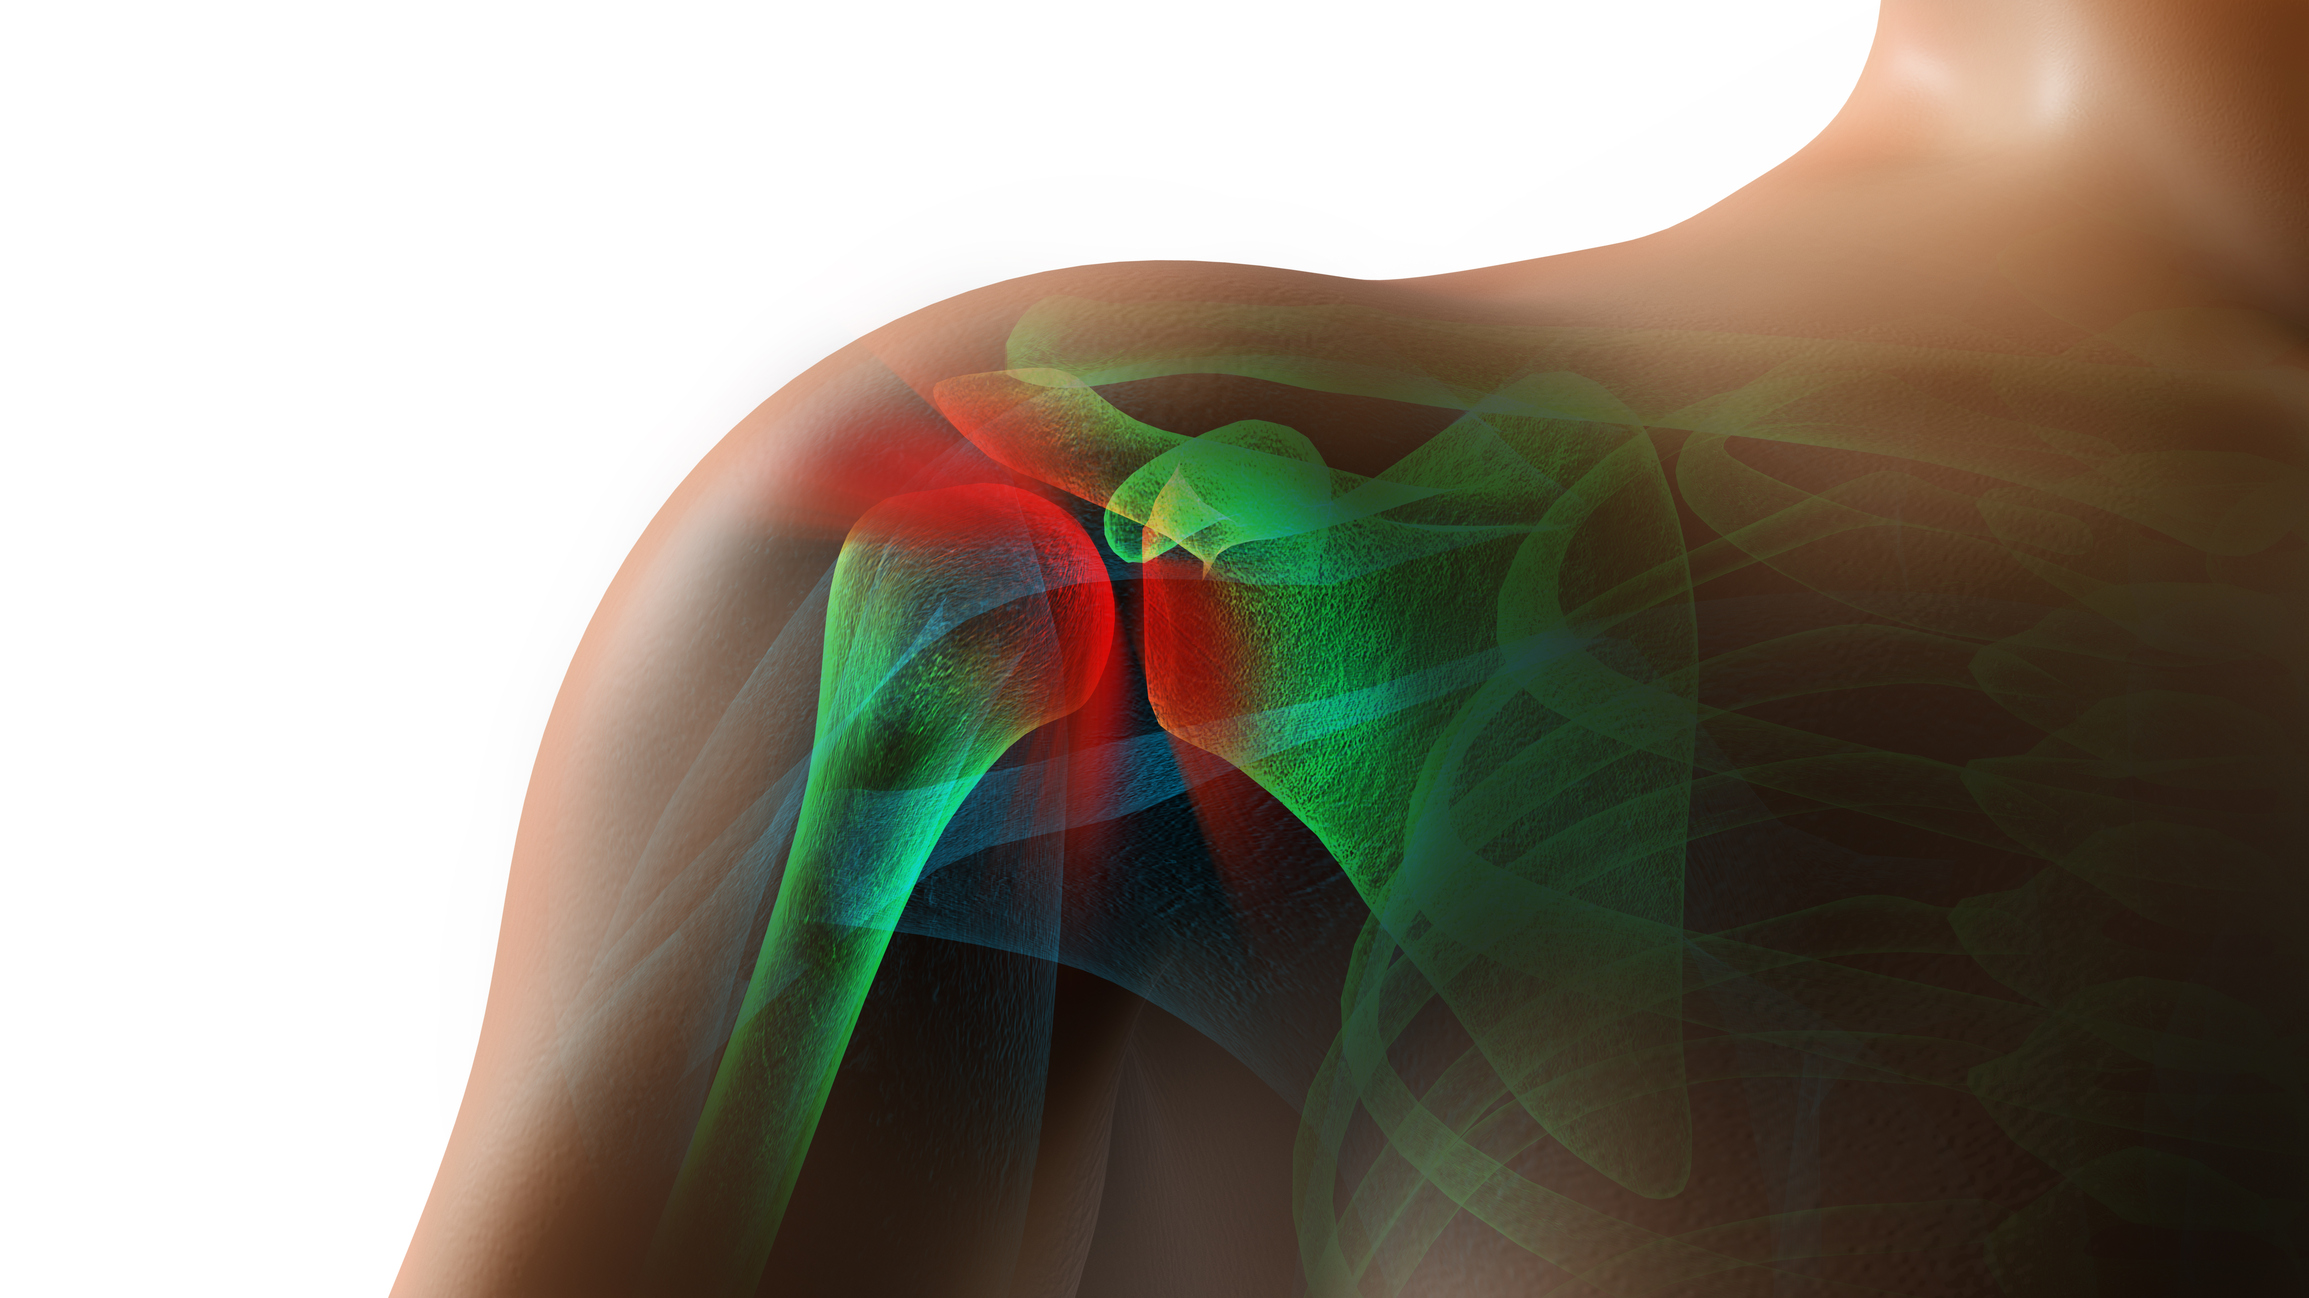 Stem cells used to speed up rotator cuff surgery recovery time